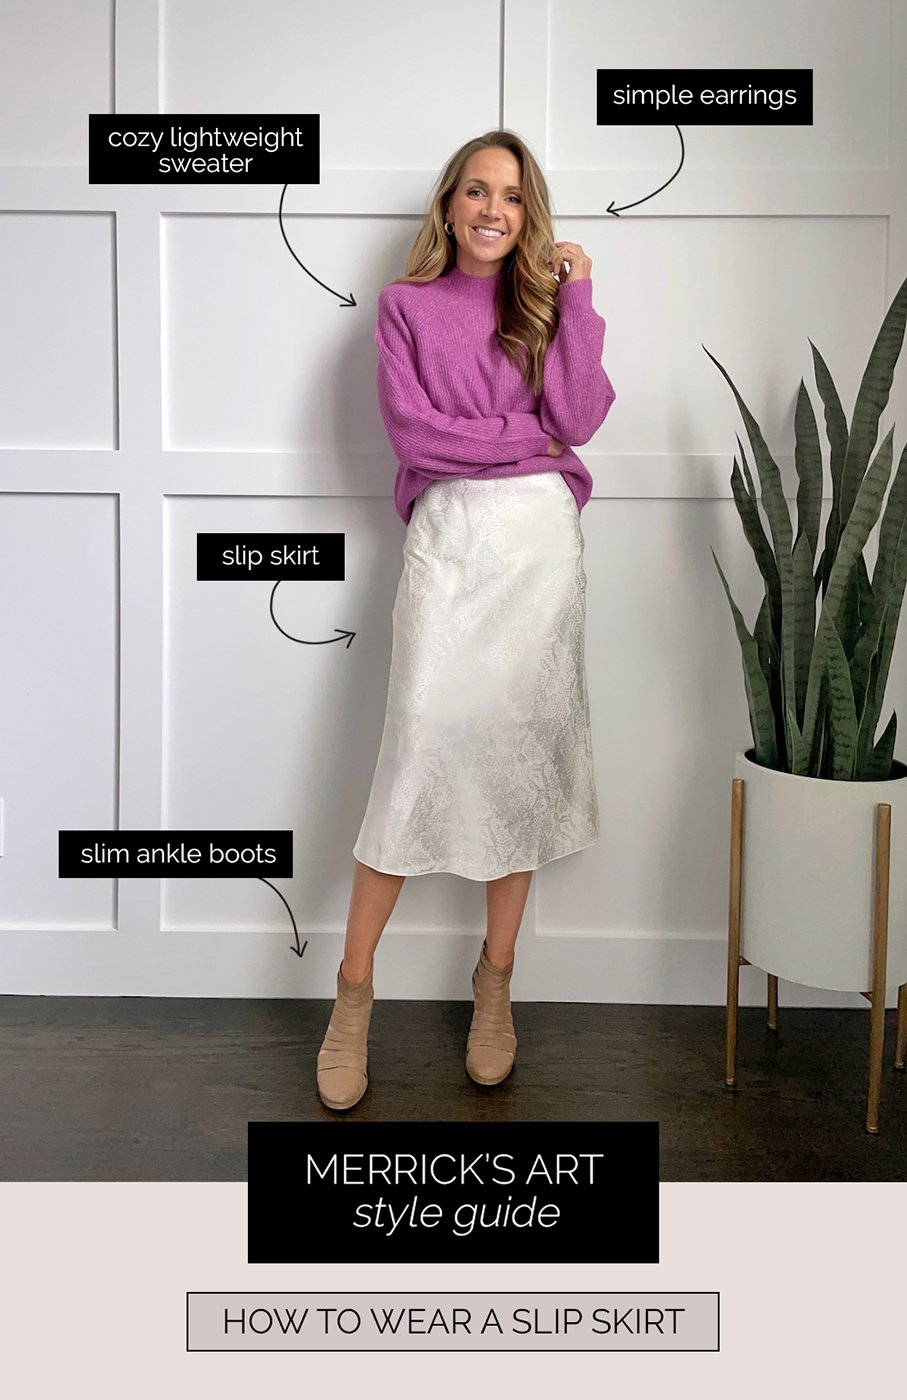 How to wear a slip skirt: sweater and boots